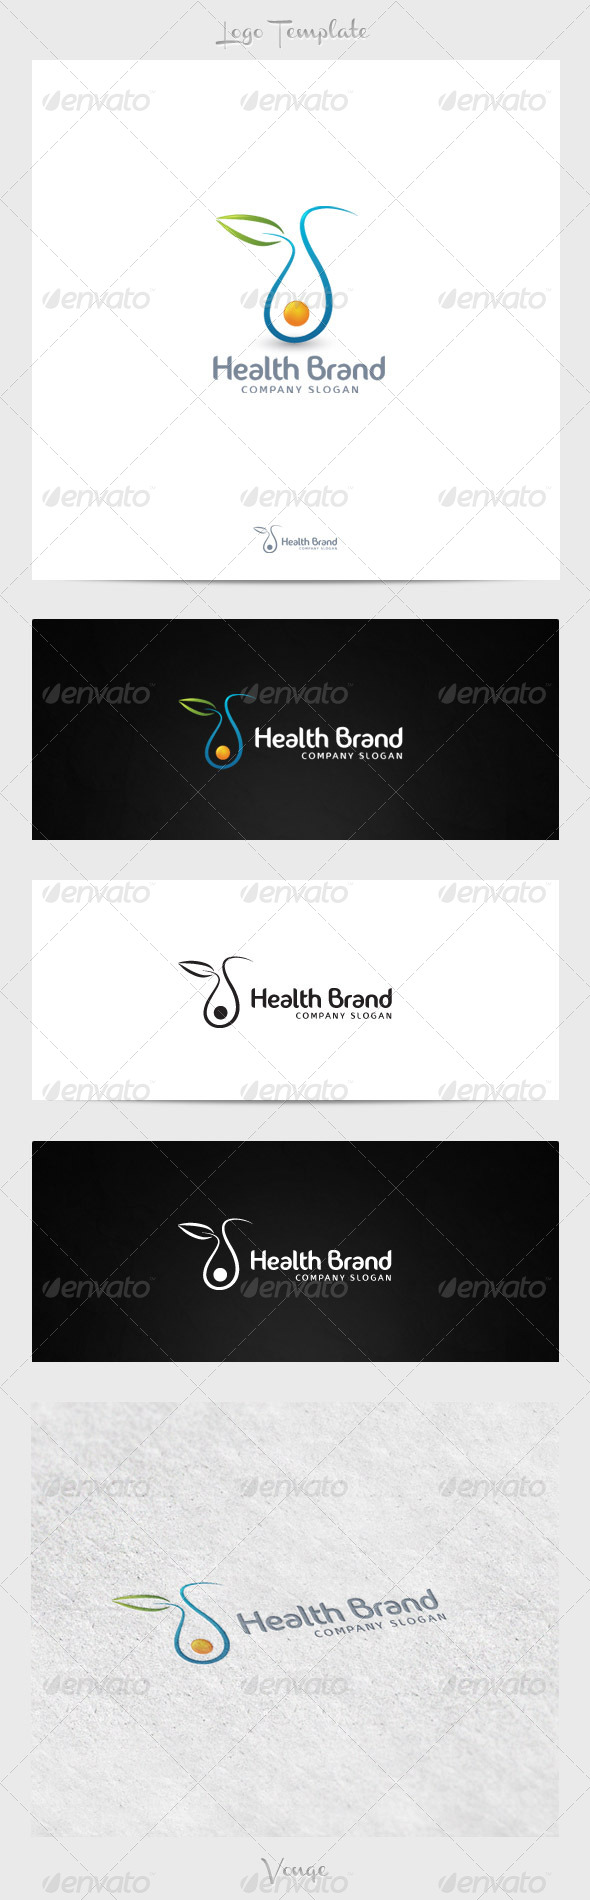 Health Brand - Nature Logo Templates